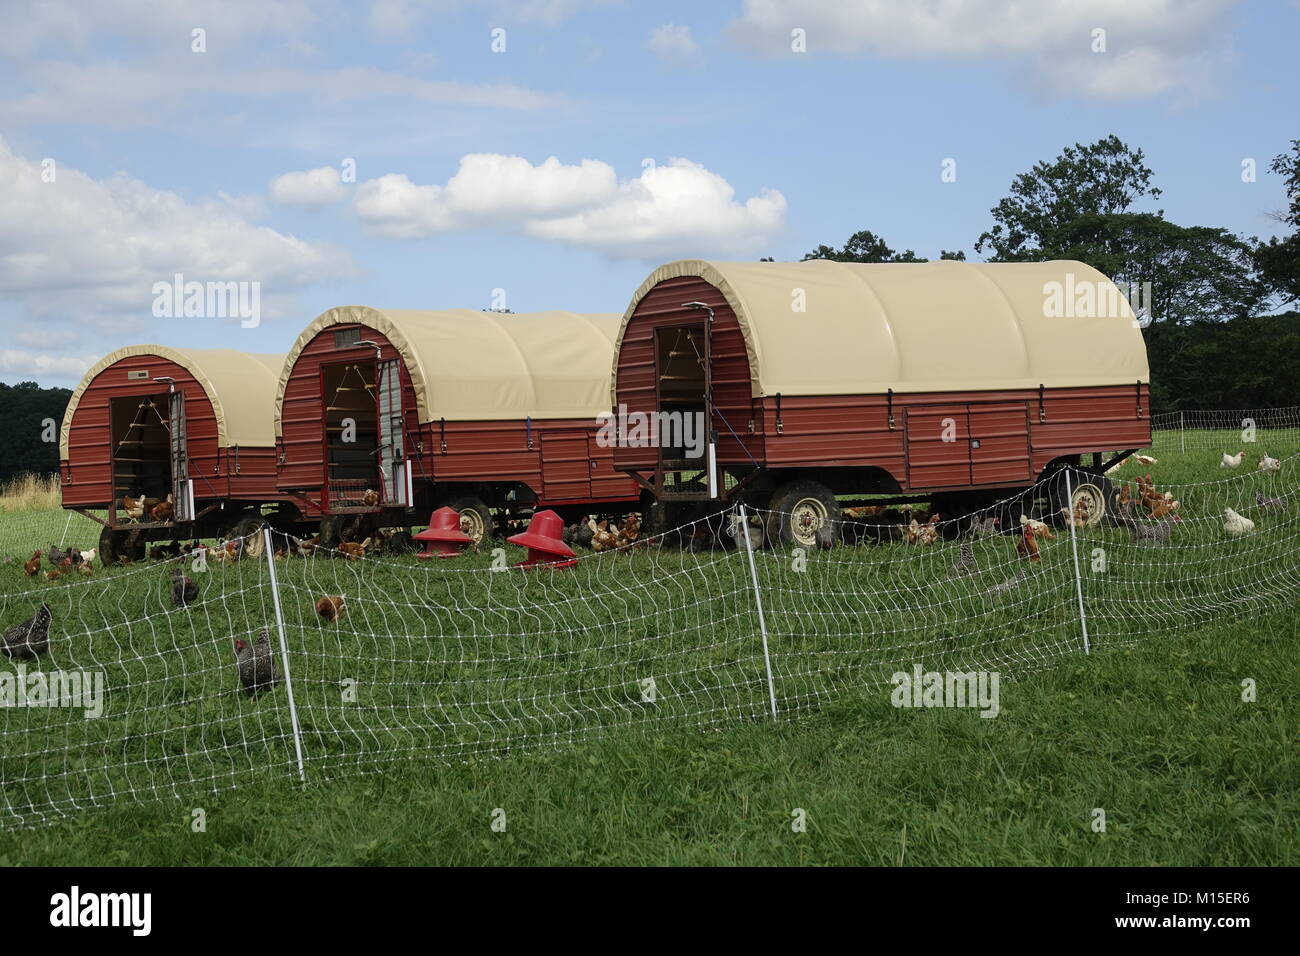 Chickens Roaming on a Farm with Red Trailers on a Summer Day Stock Photo